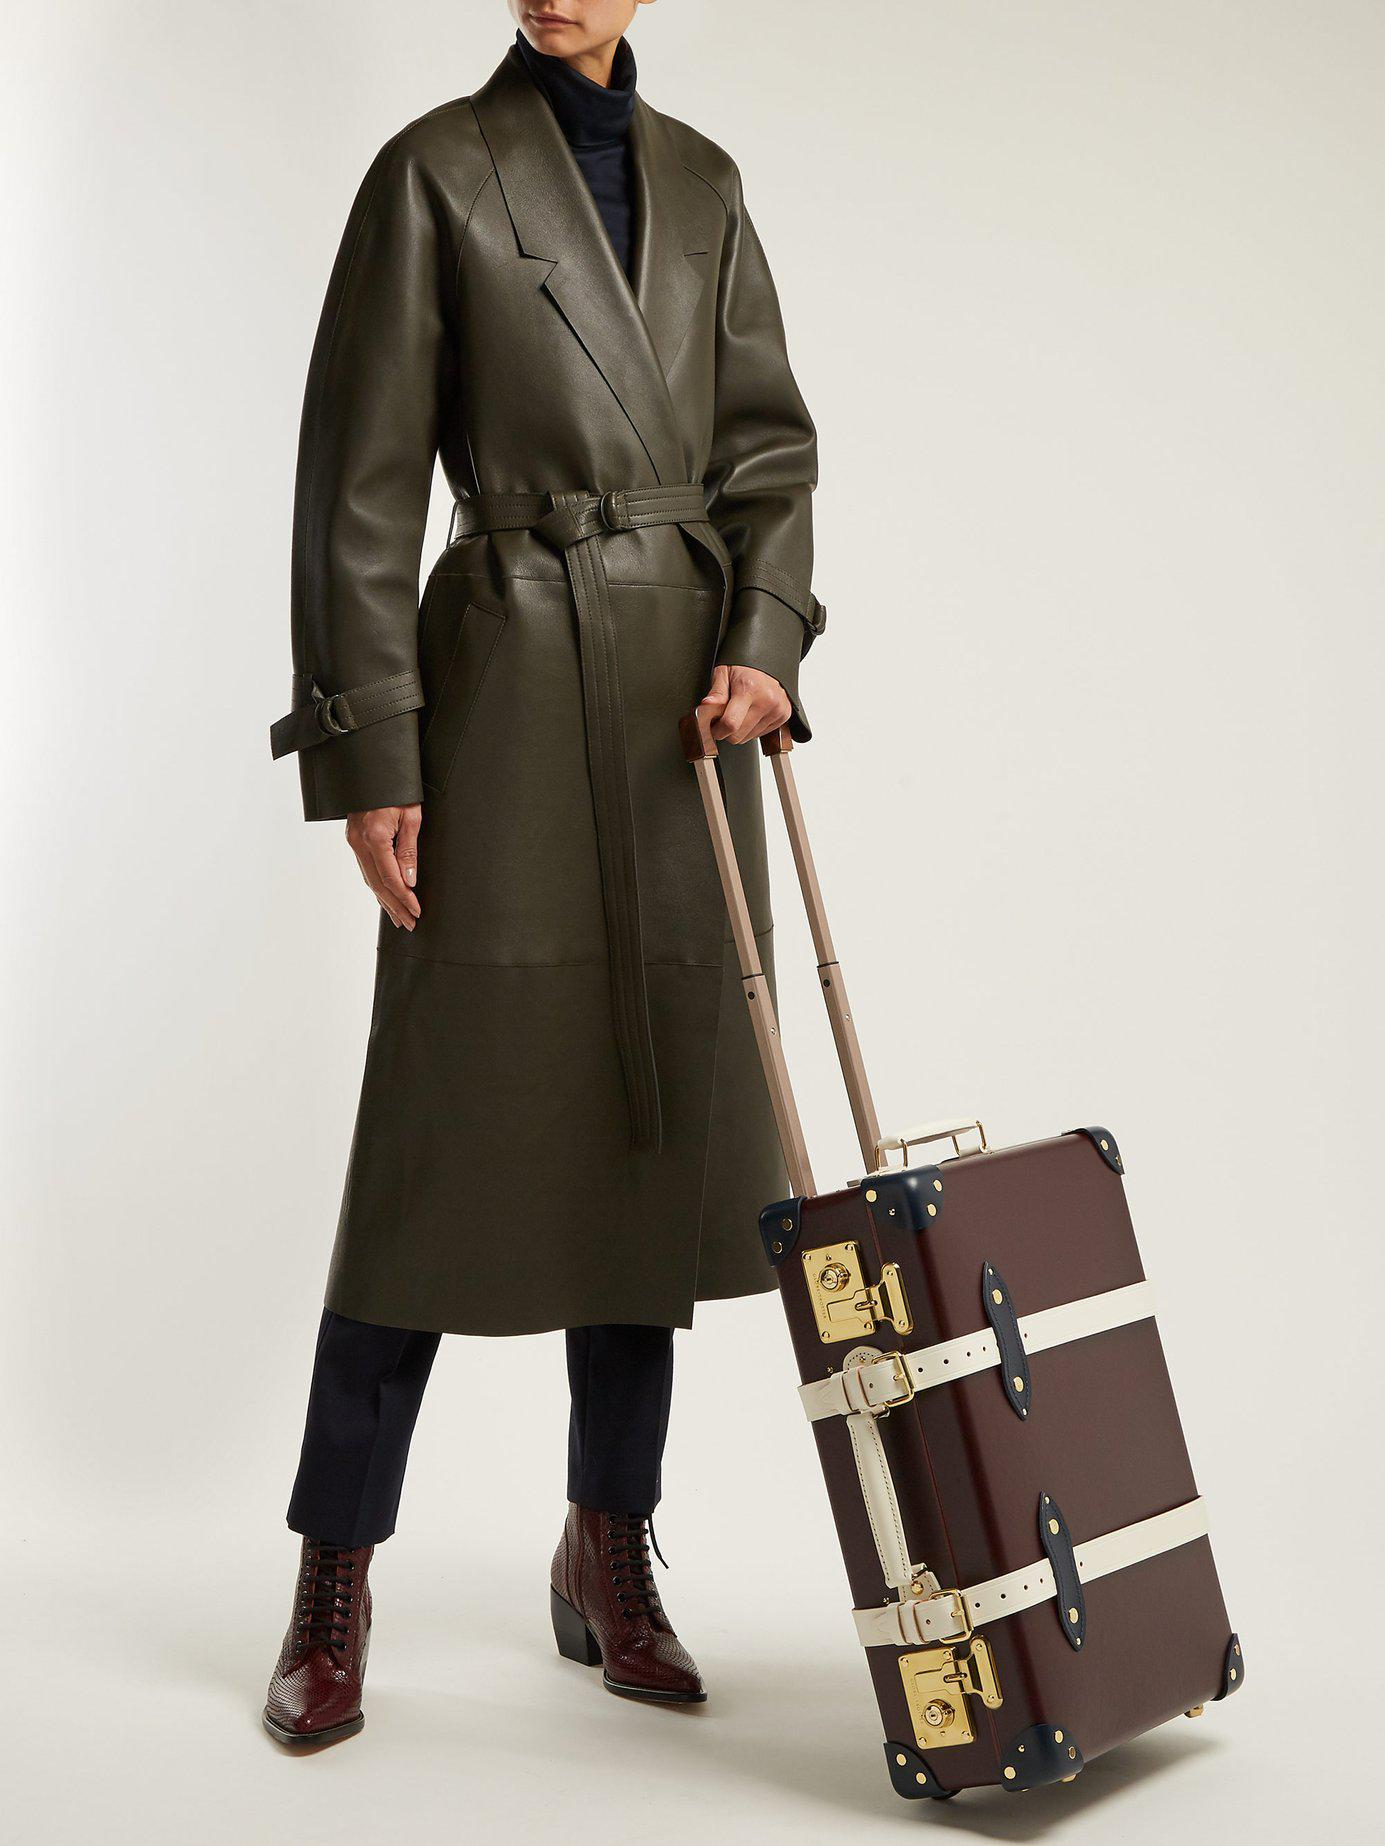 a283757b3a8 Lyst - Globe-Trotter X The Goring 20 Suitcase in Purple